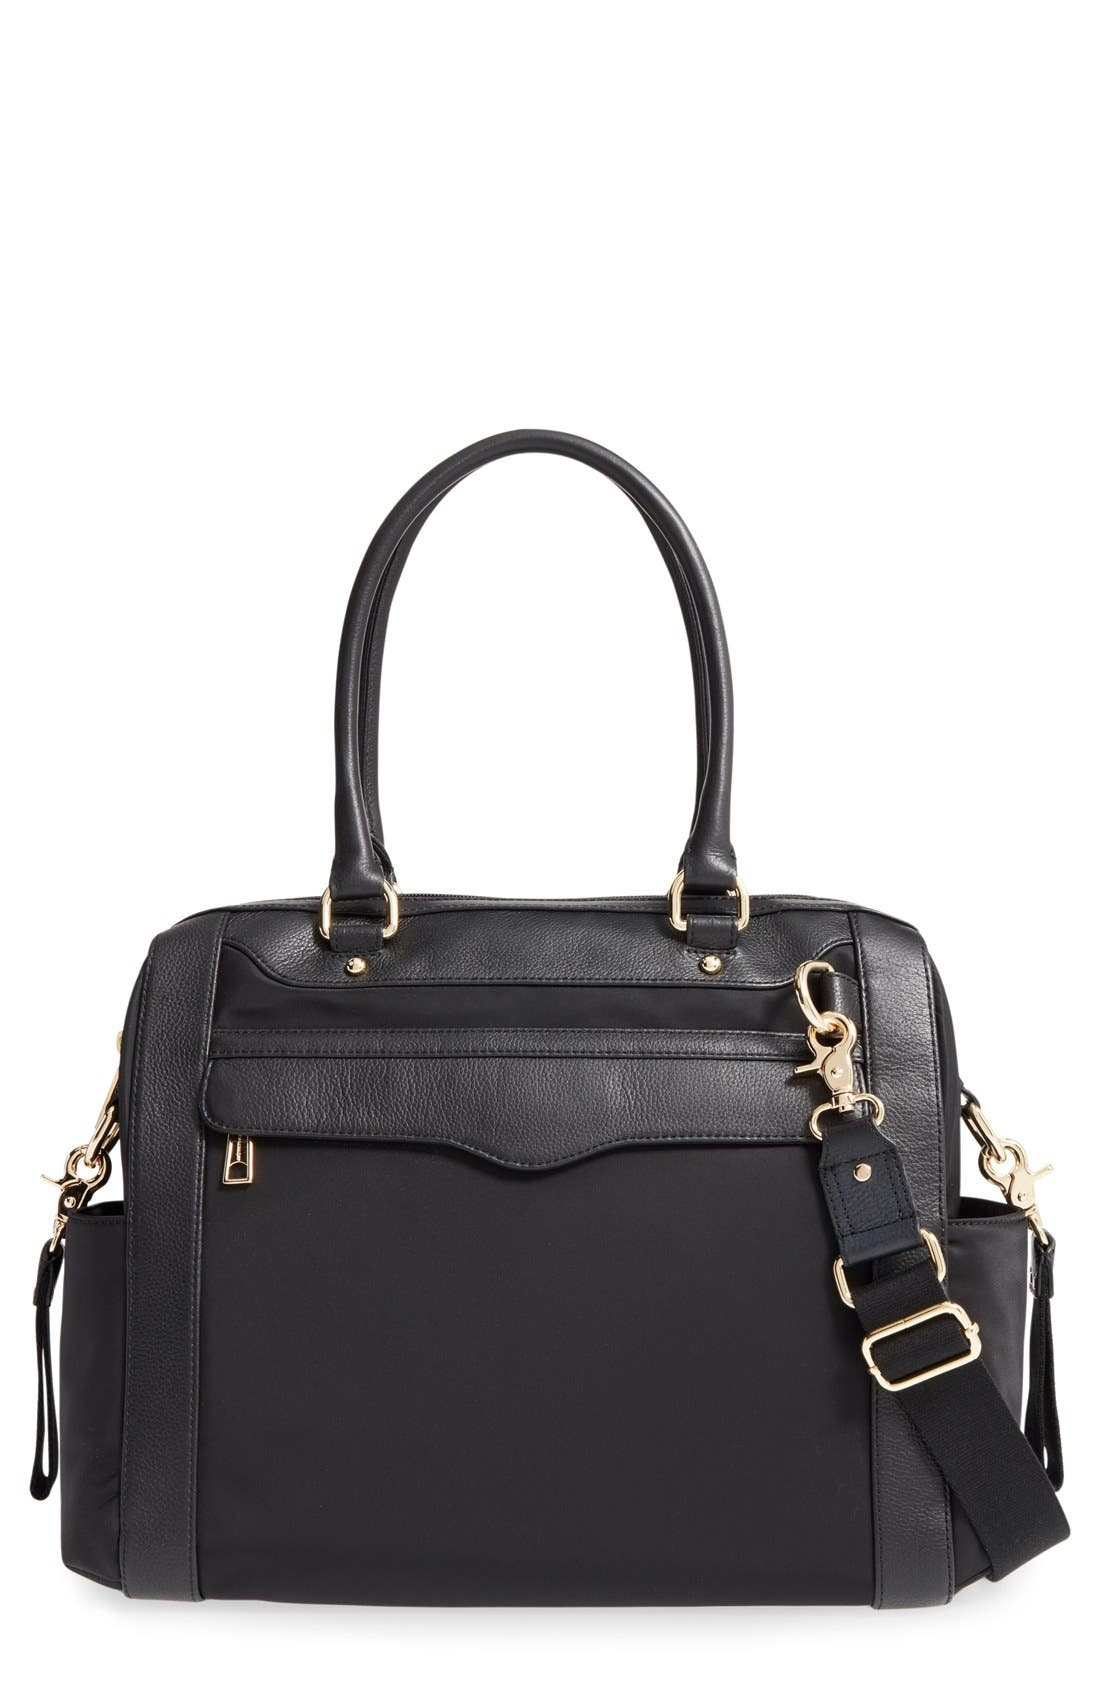 Alternate Image 1 Selected - Rebecca Minkoff 'Knocked Up' Leather Diaper Bag